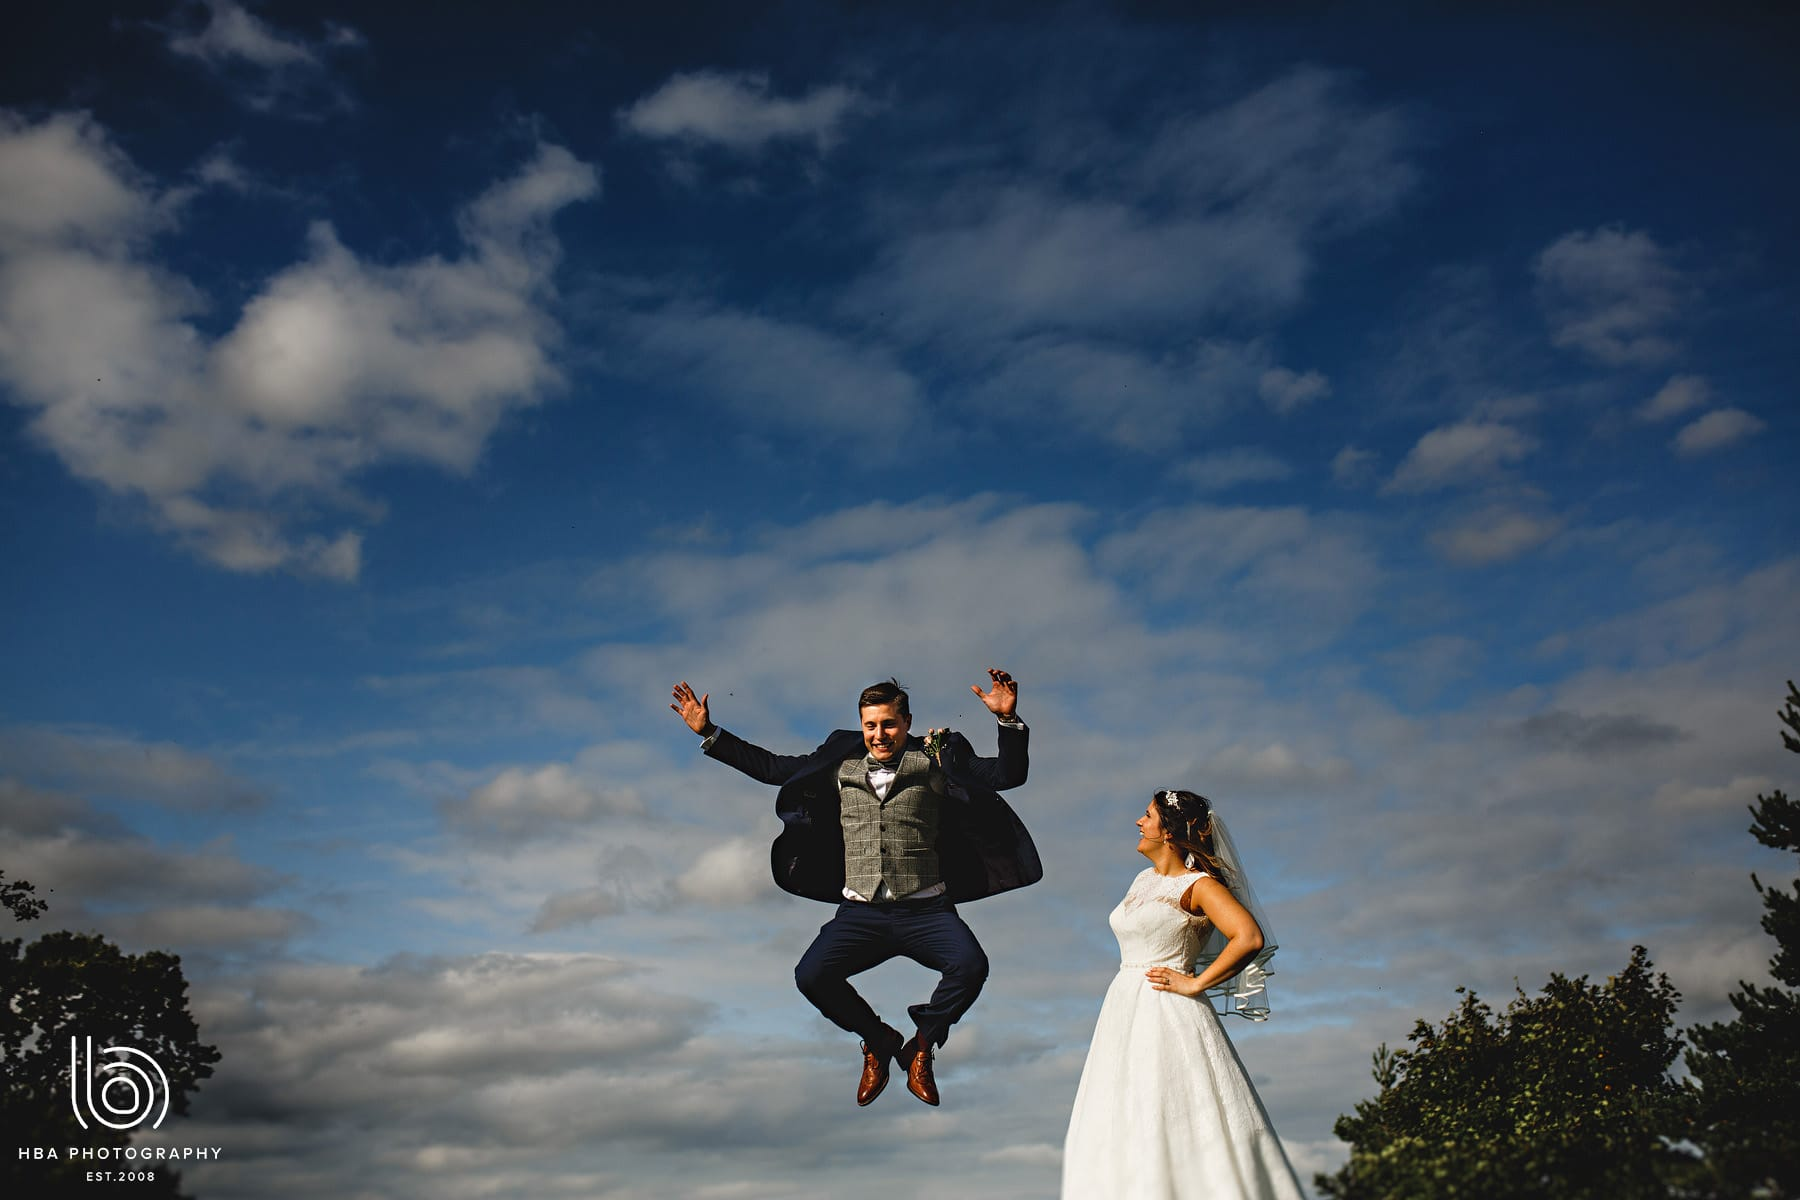 the groom jumping for joy